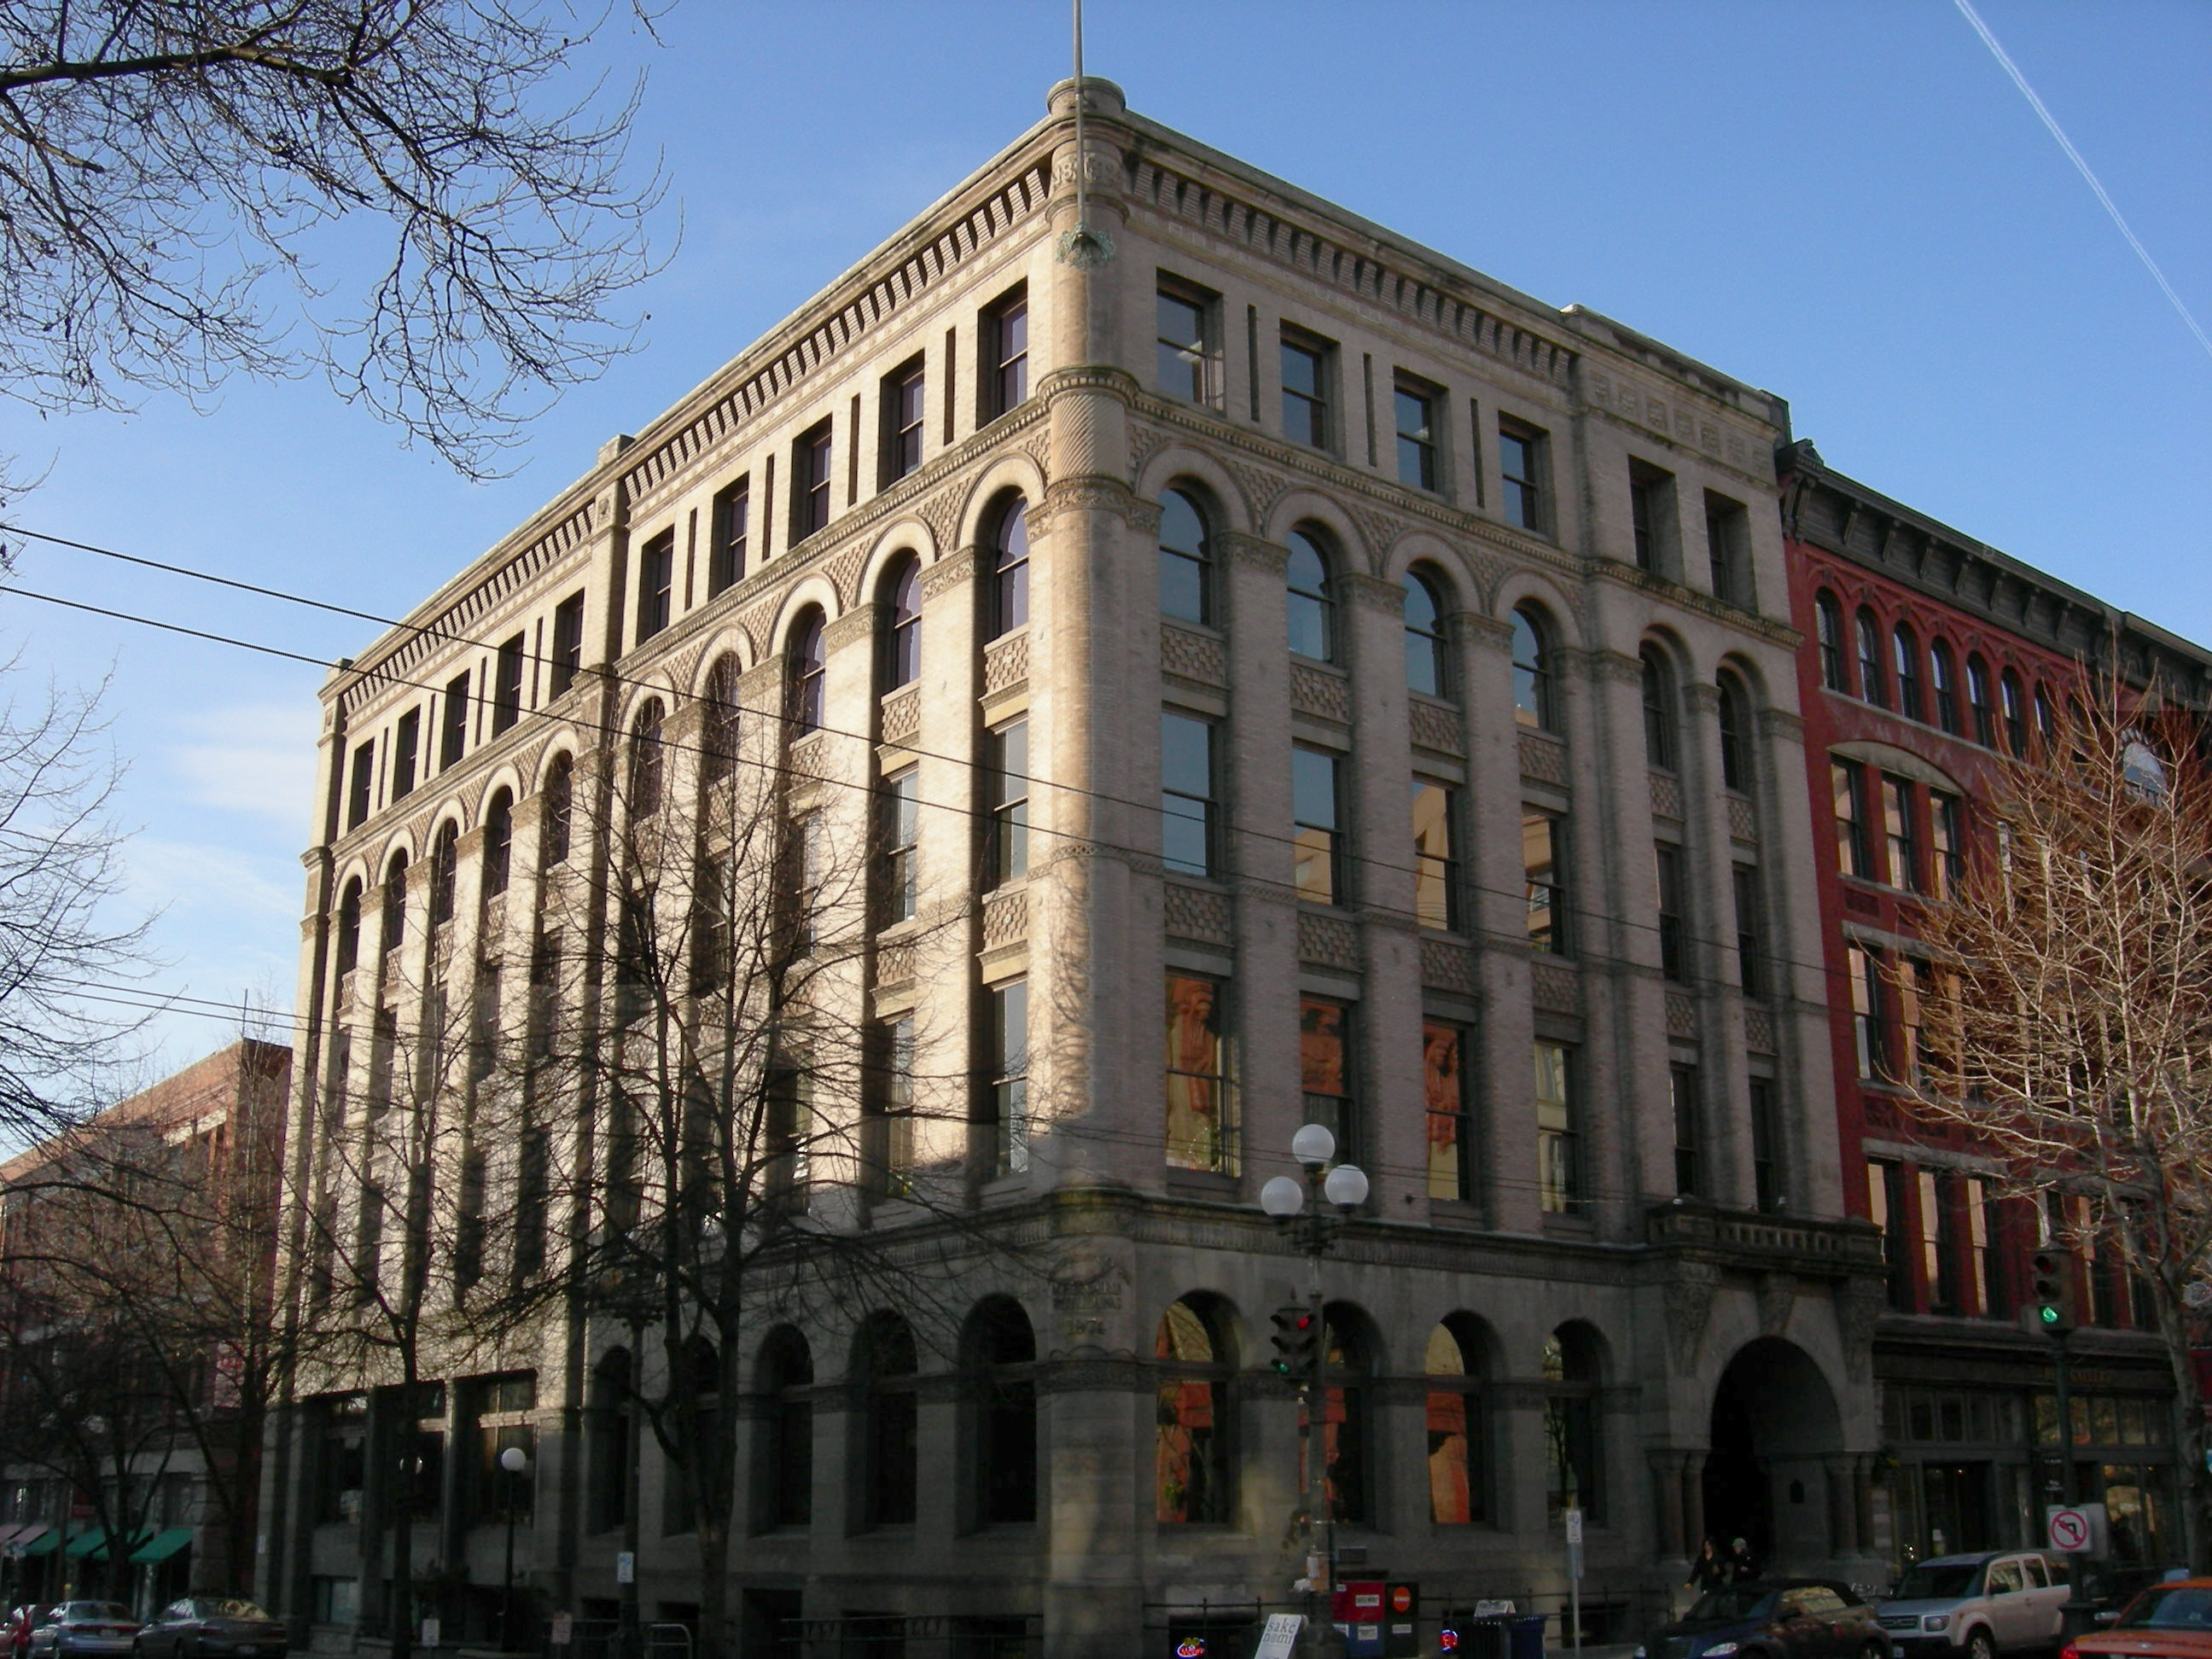 This five-story masonry building was designed by Albert Wickersham and features many elements of the Romanesque Revival style of architecture.